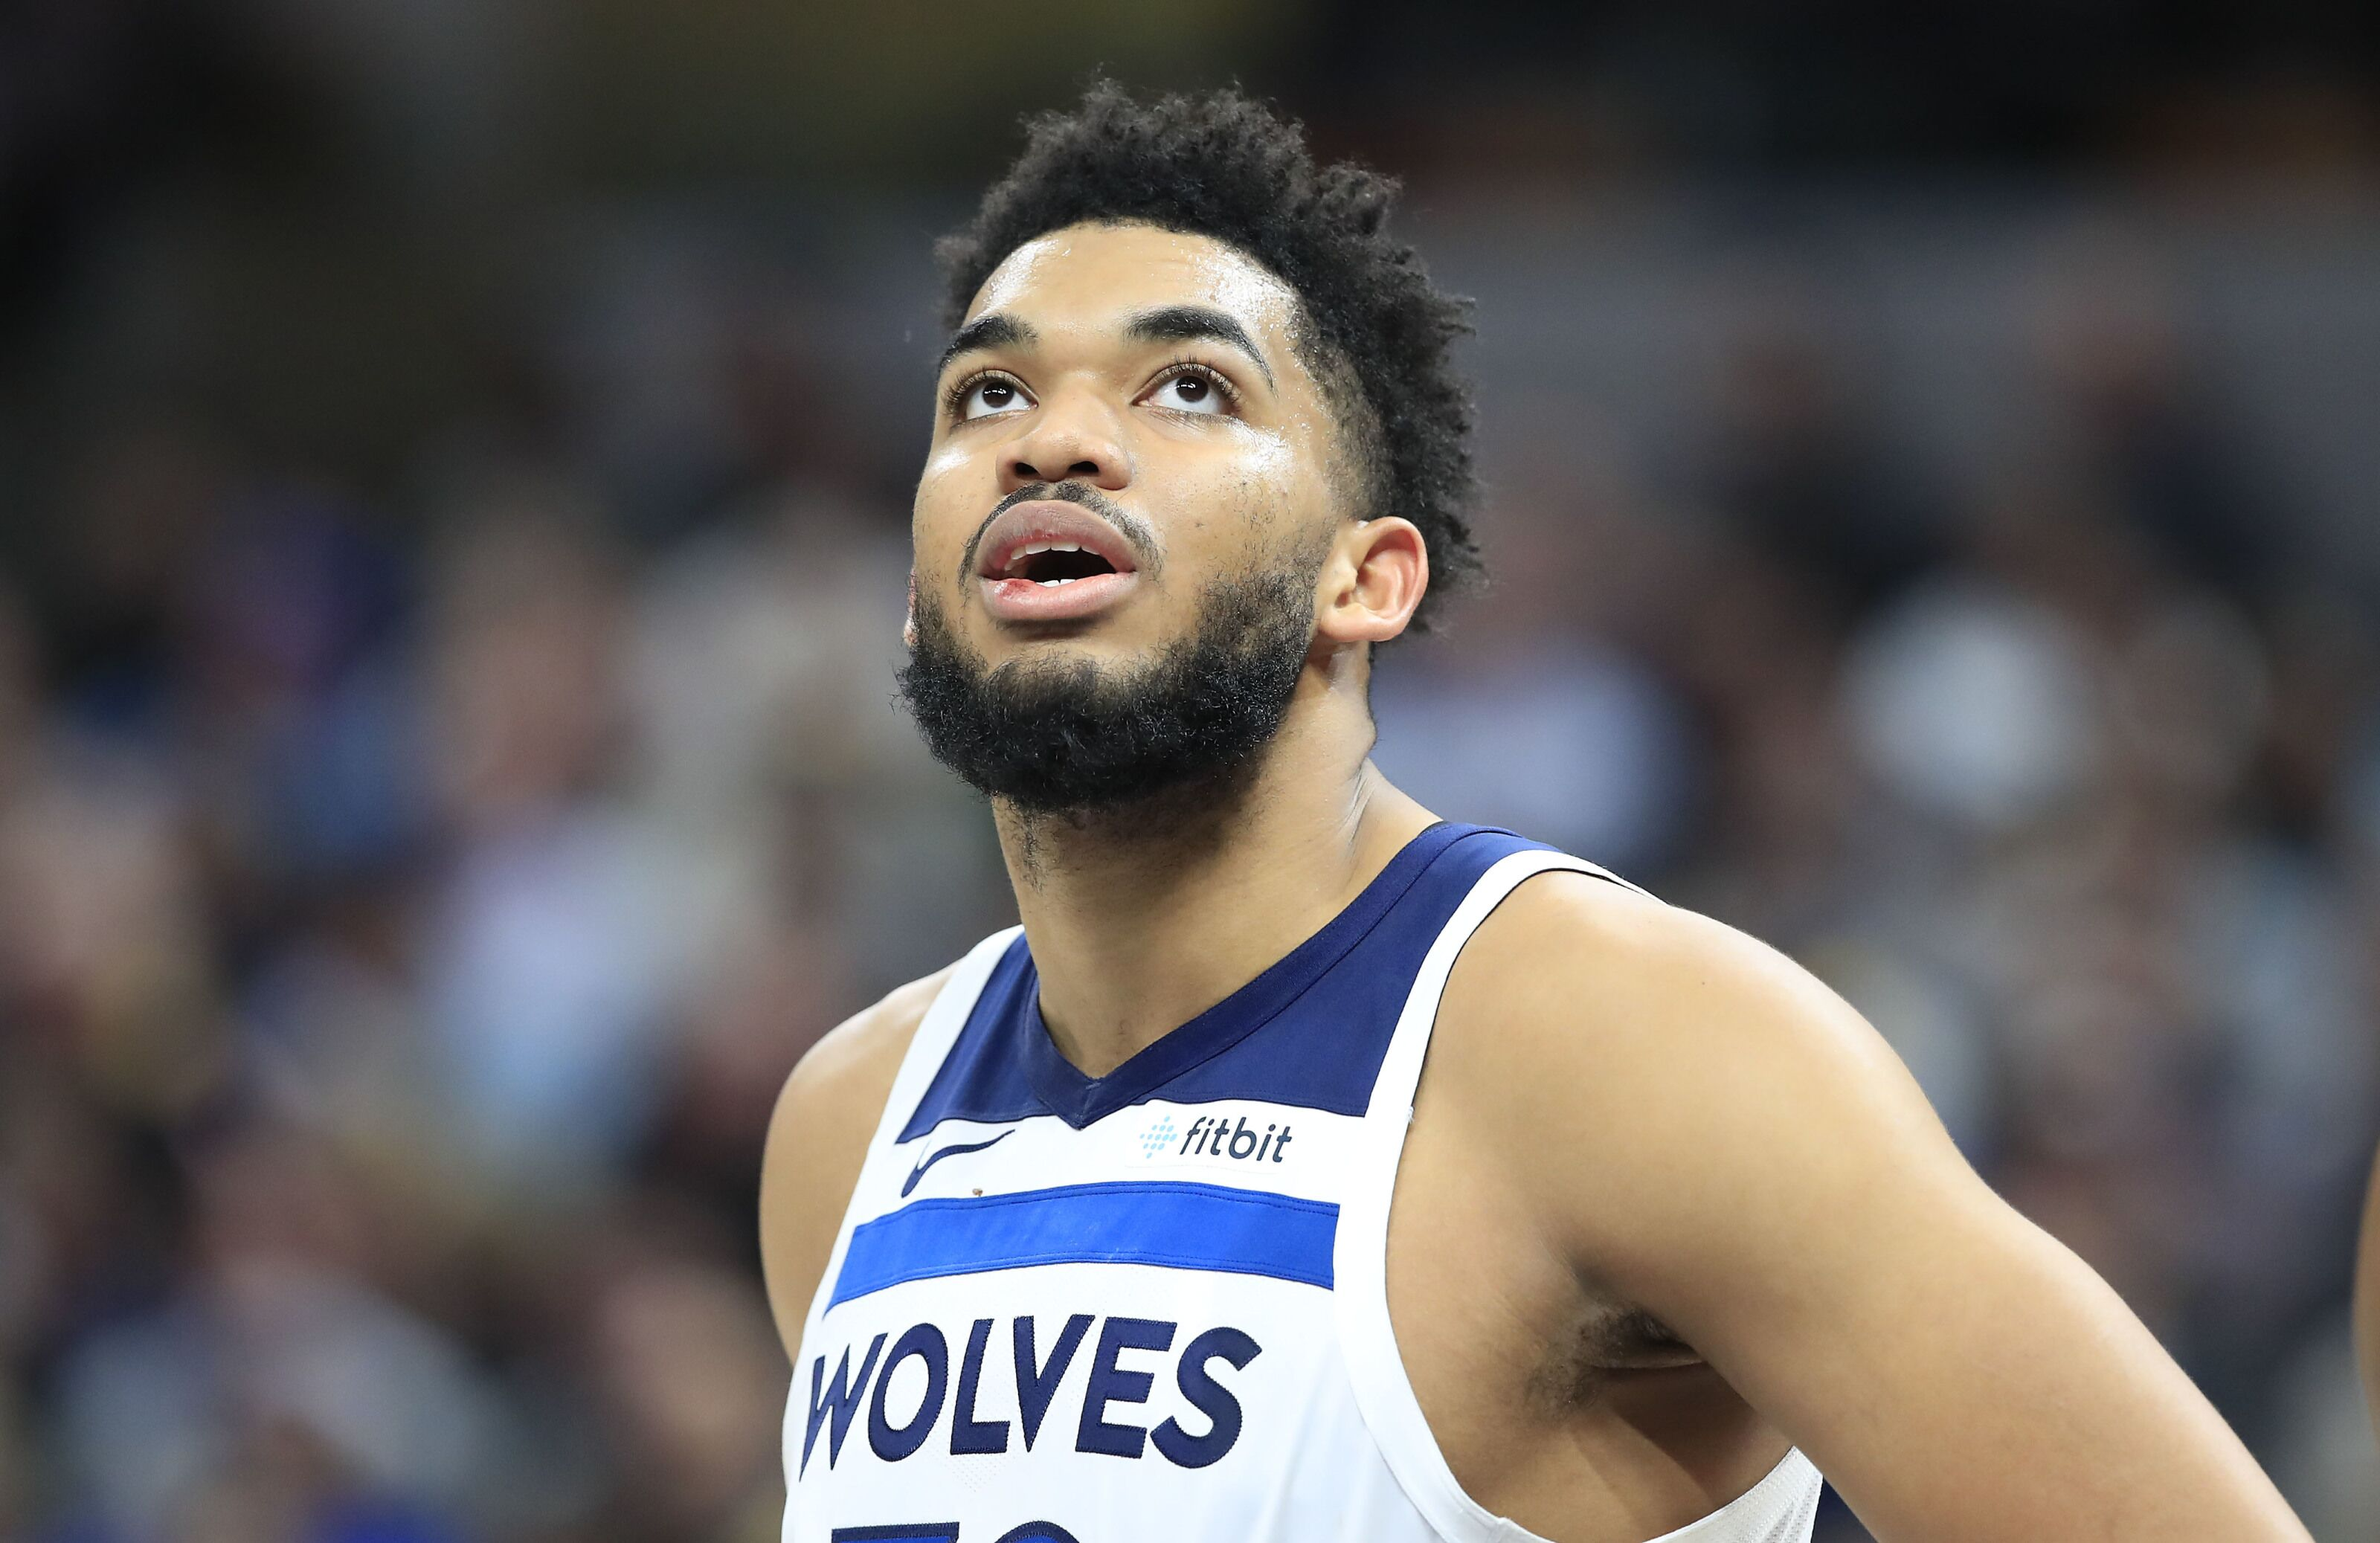 Minnesota Timberwolves: Karl-Anthony Towns continues to be overlooked